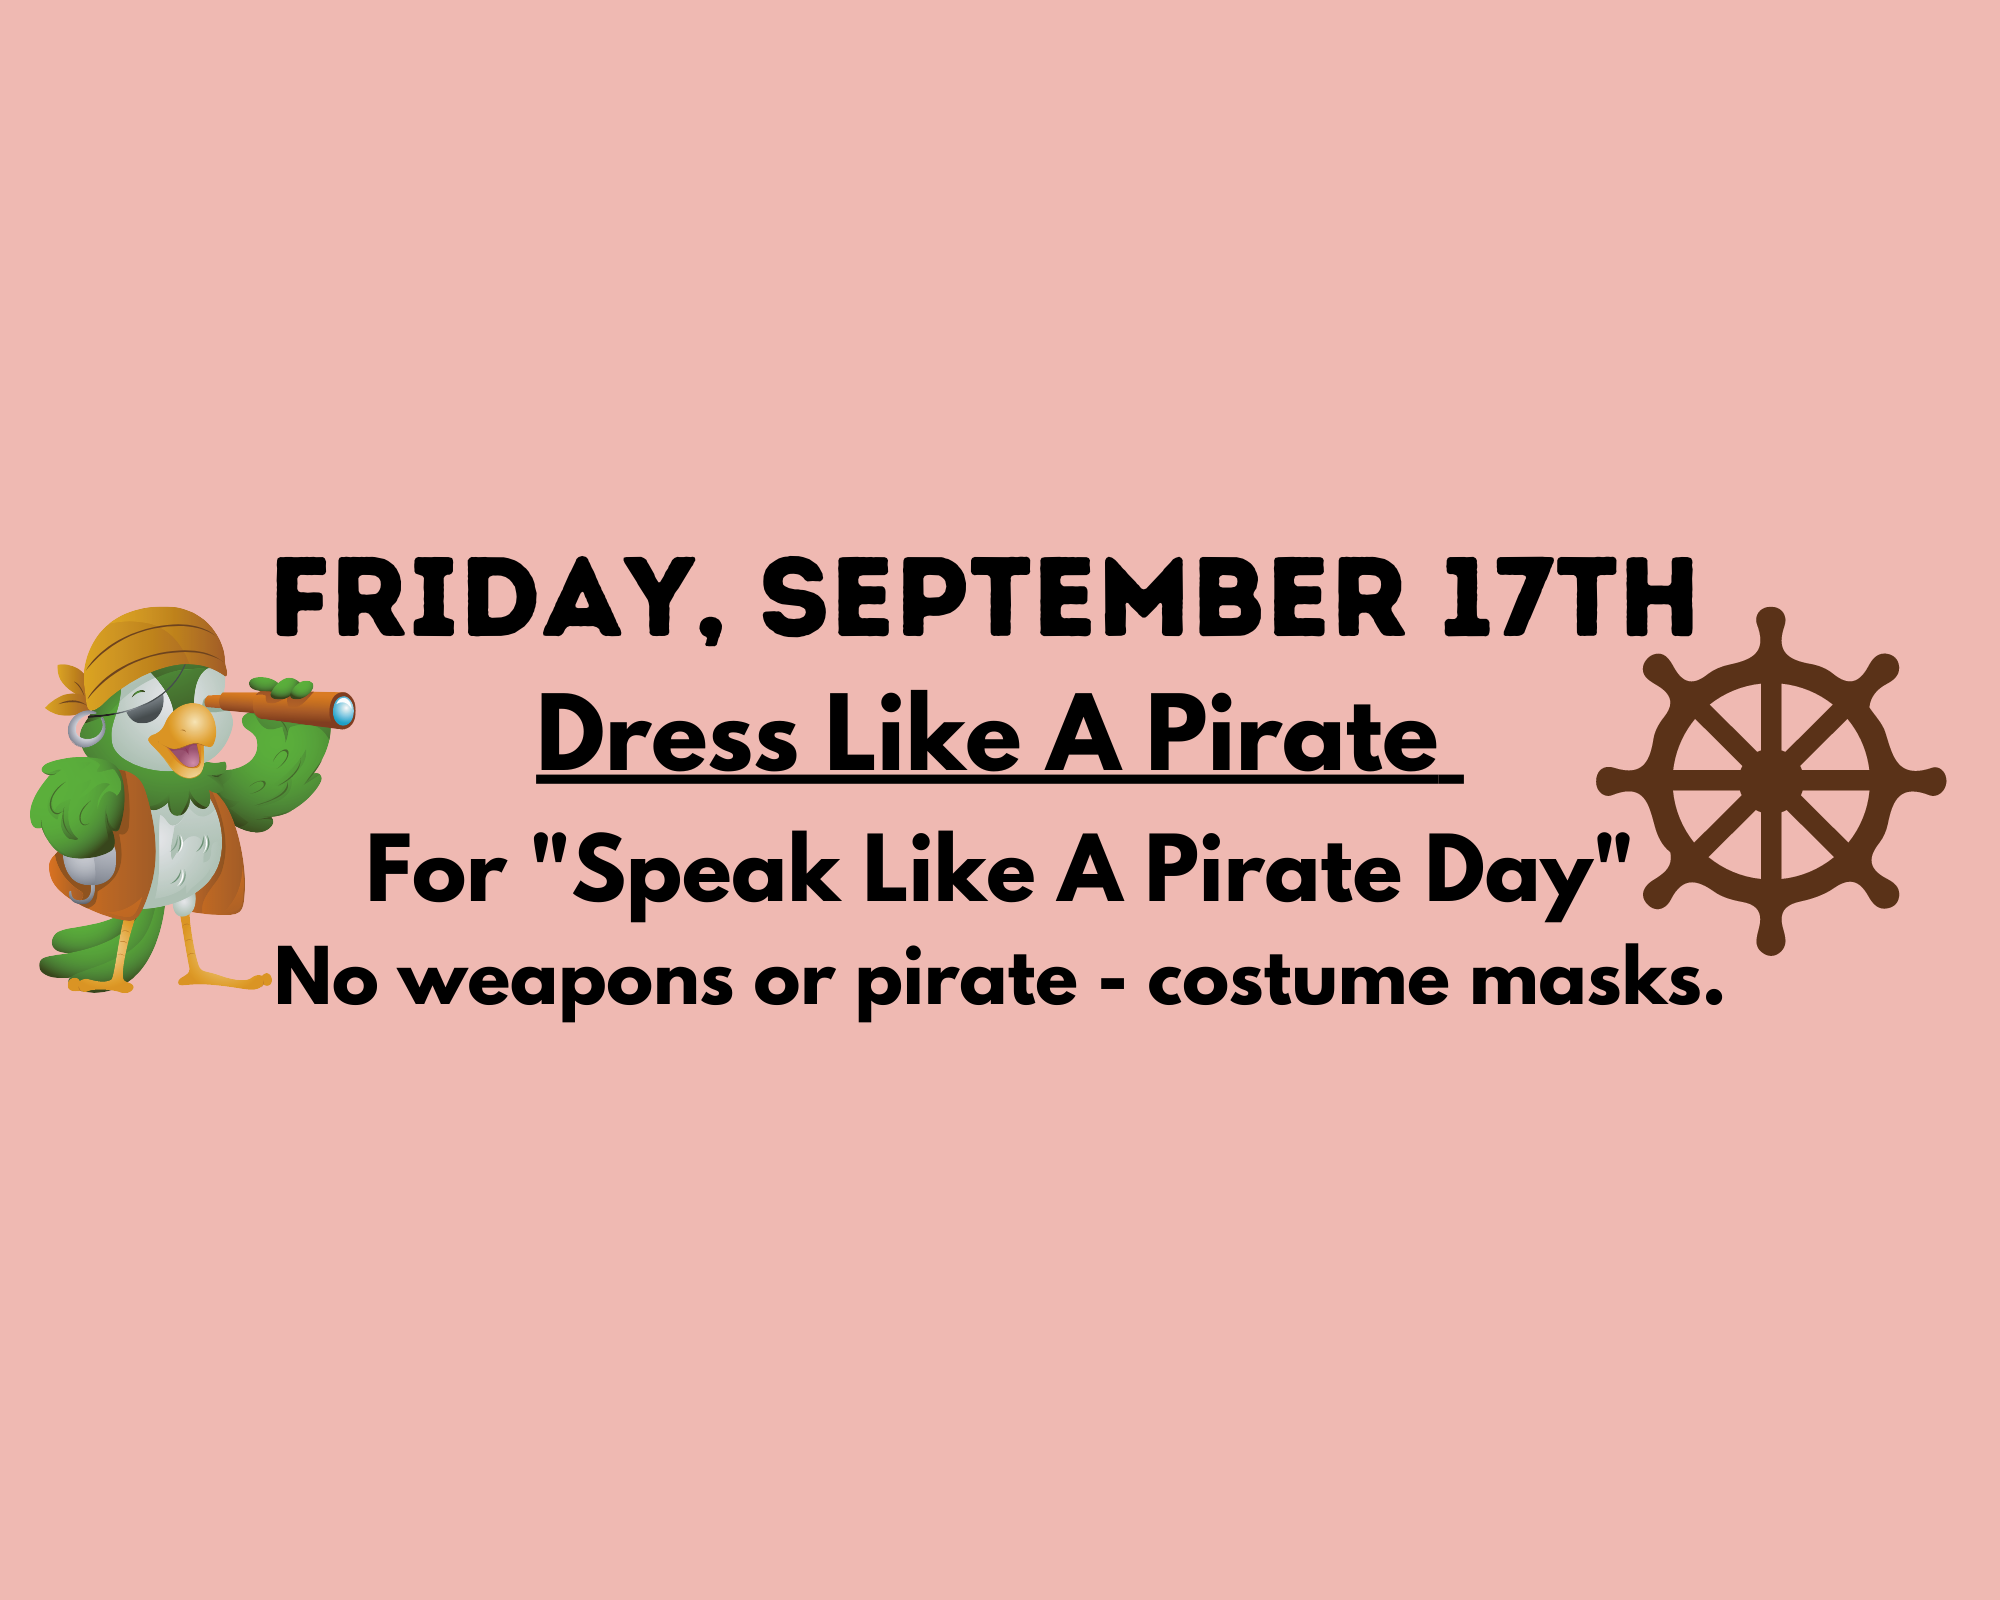 Dress Like A Pirate Day! Friday, September 17th.